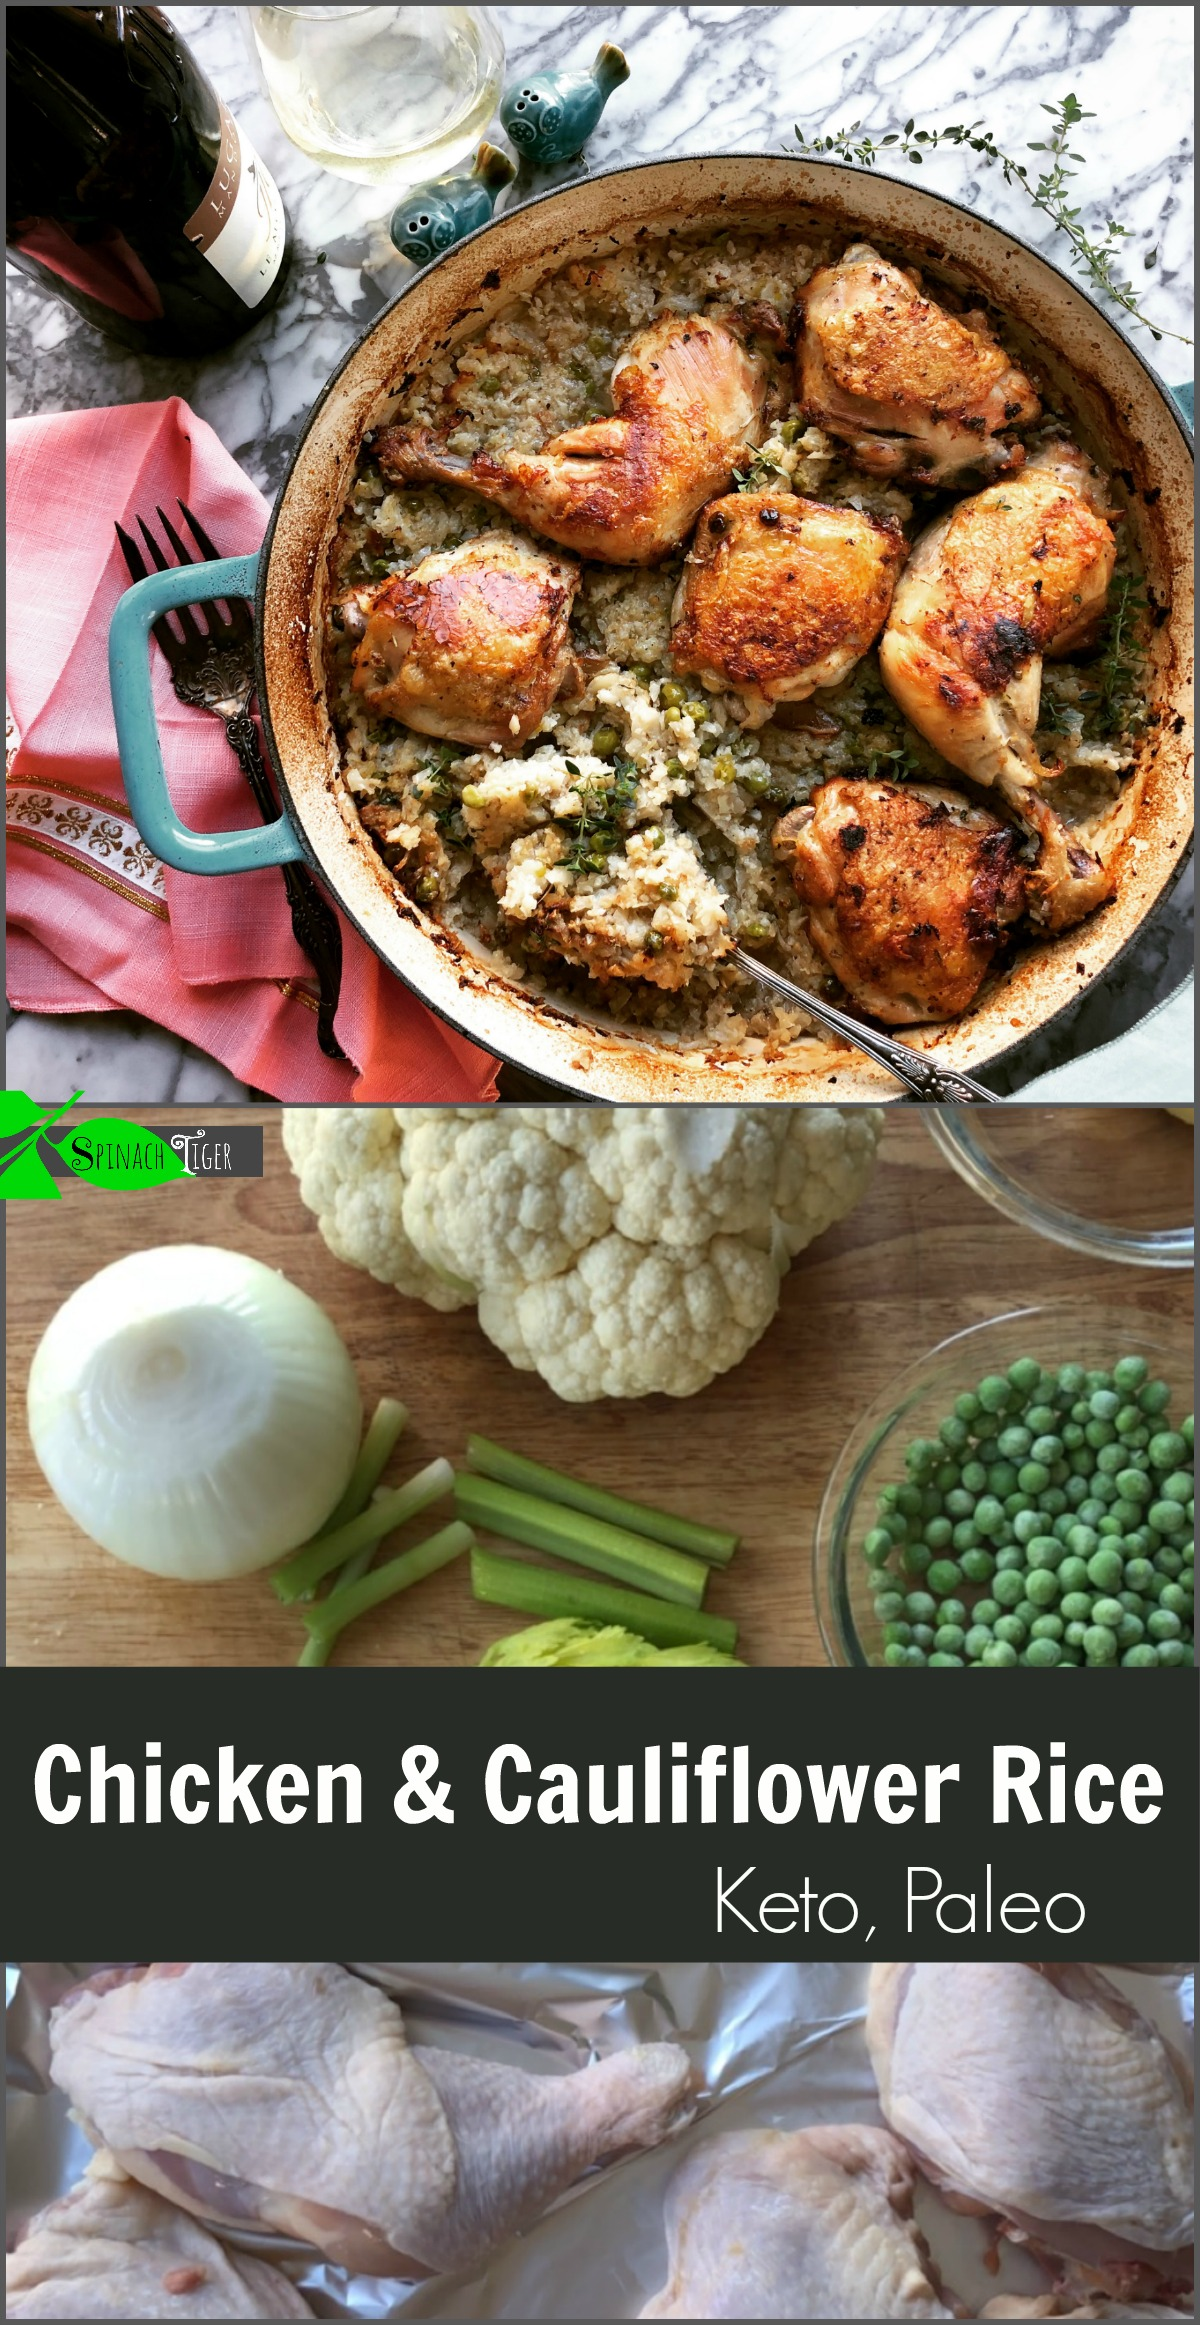 Cauliflower Rice and Chicken: How to Make Cauliflower Rice